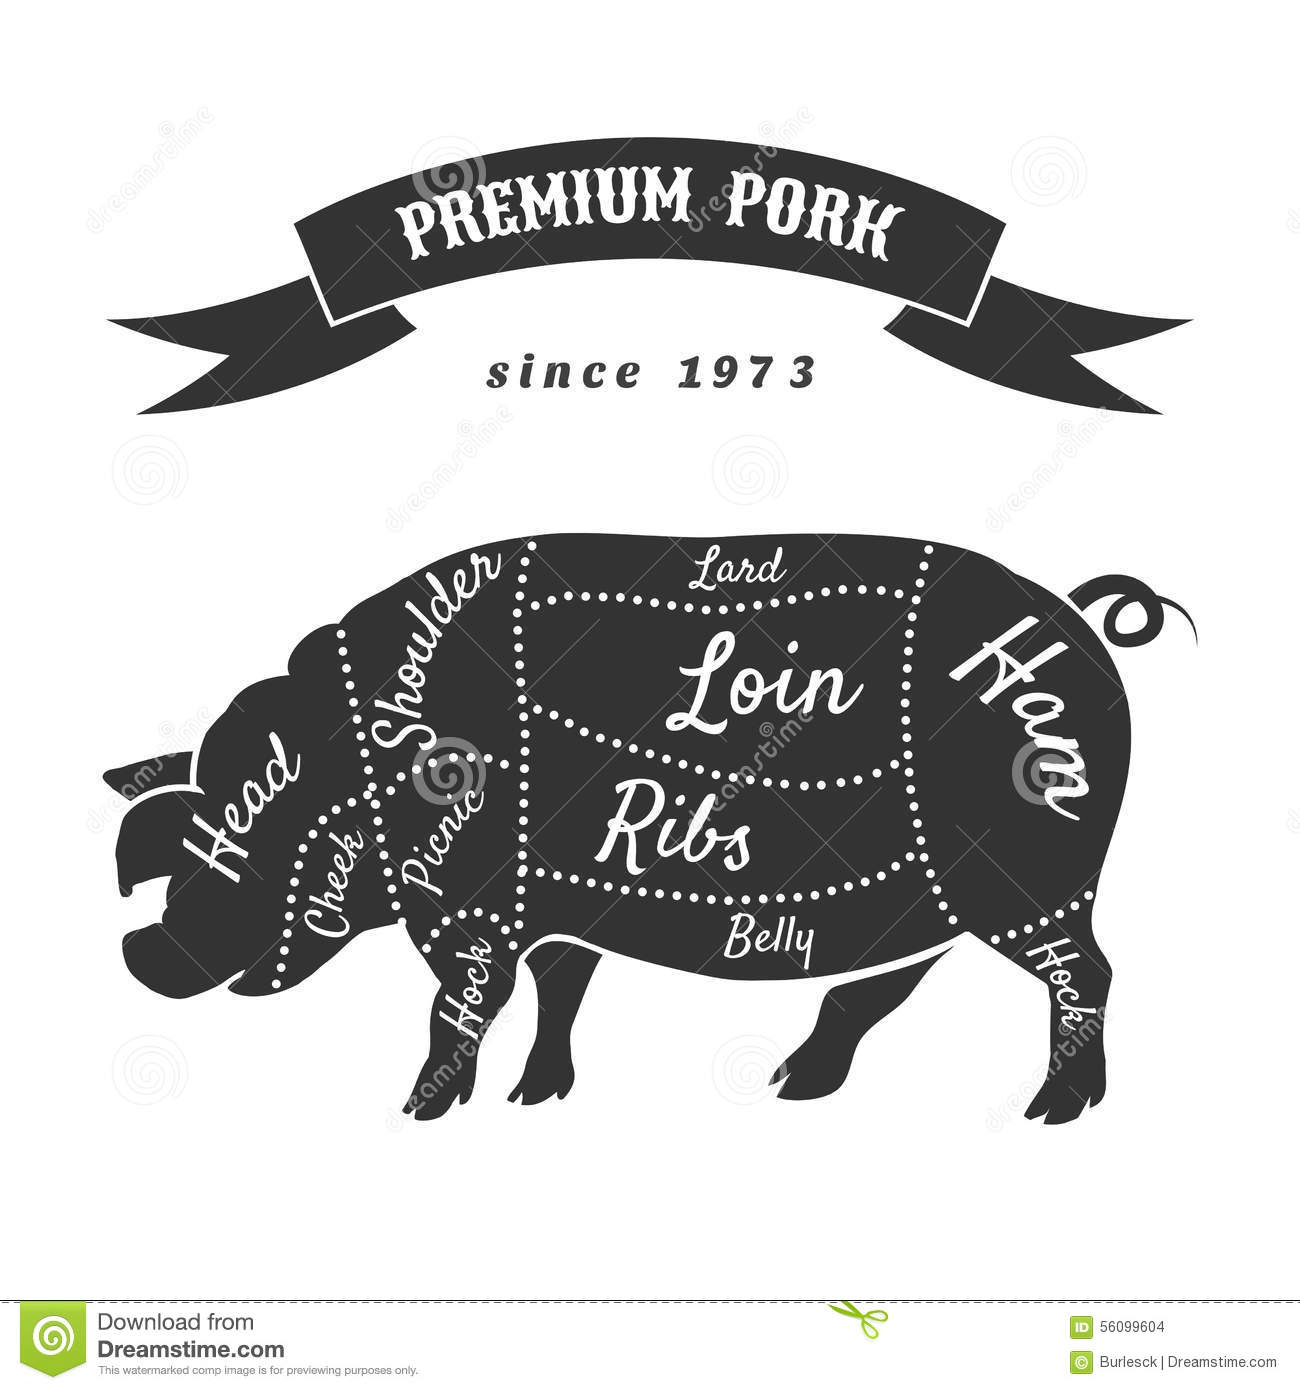 pork butcher cuts diagram wiring of motorcycle alarm system pig map schematic vector or scheme stock chicken production food steak